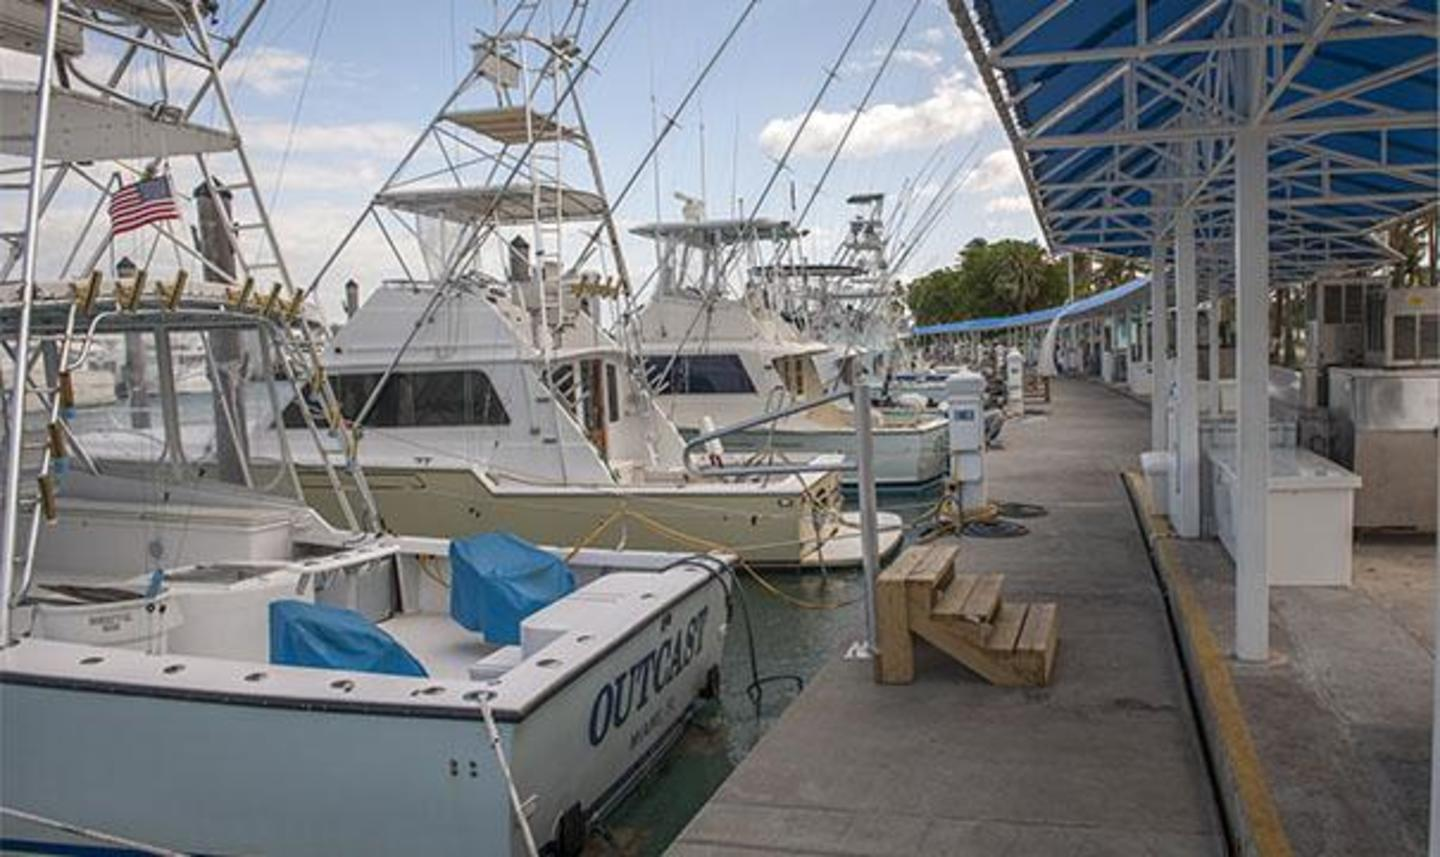 Deep sea fishing charter boats at Bill Bird Marina at Haulover Park